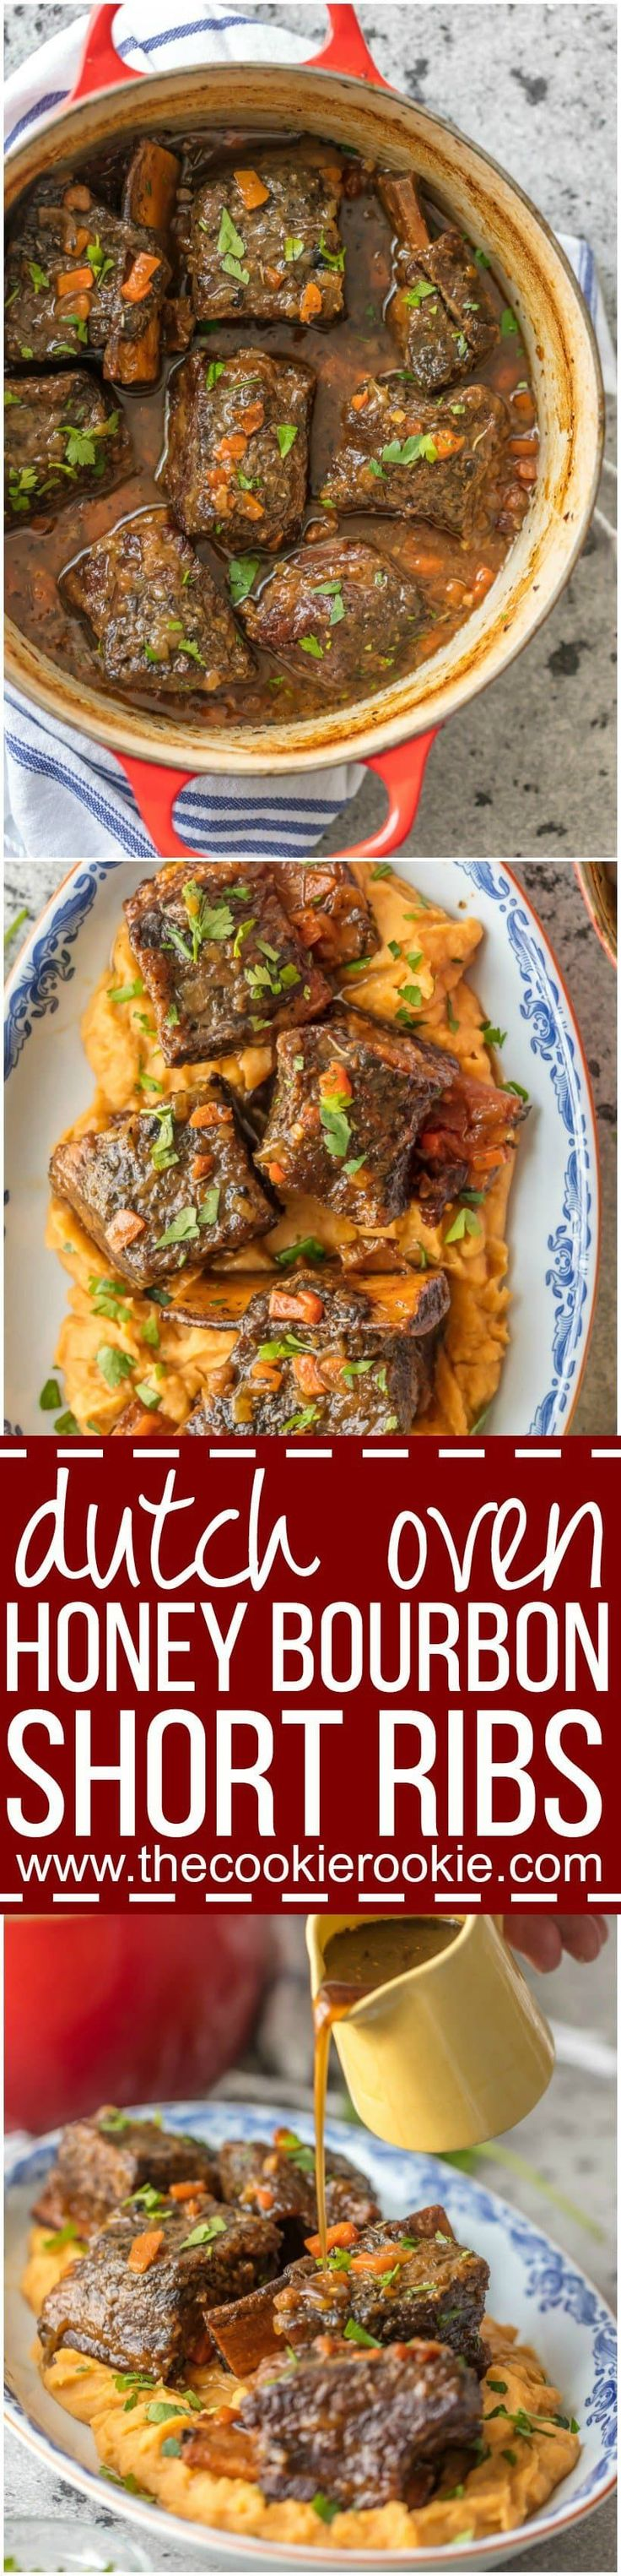 We love these DUTCH OVEN HONEY BOURBON SHORT RIBS! It's so easy to make these flavorful and fall off the bone ribs right in your dutch oven. Less cleanup and more flavor! via @beckygallhardin